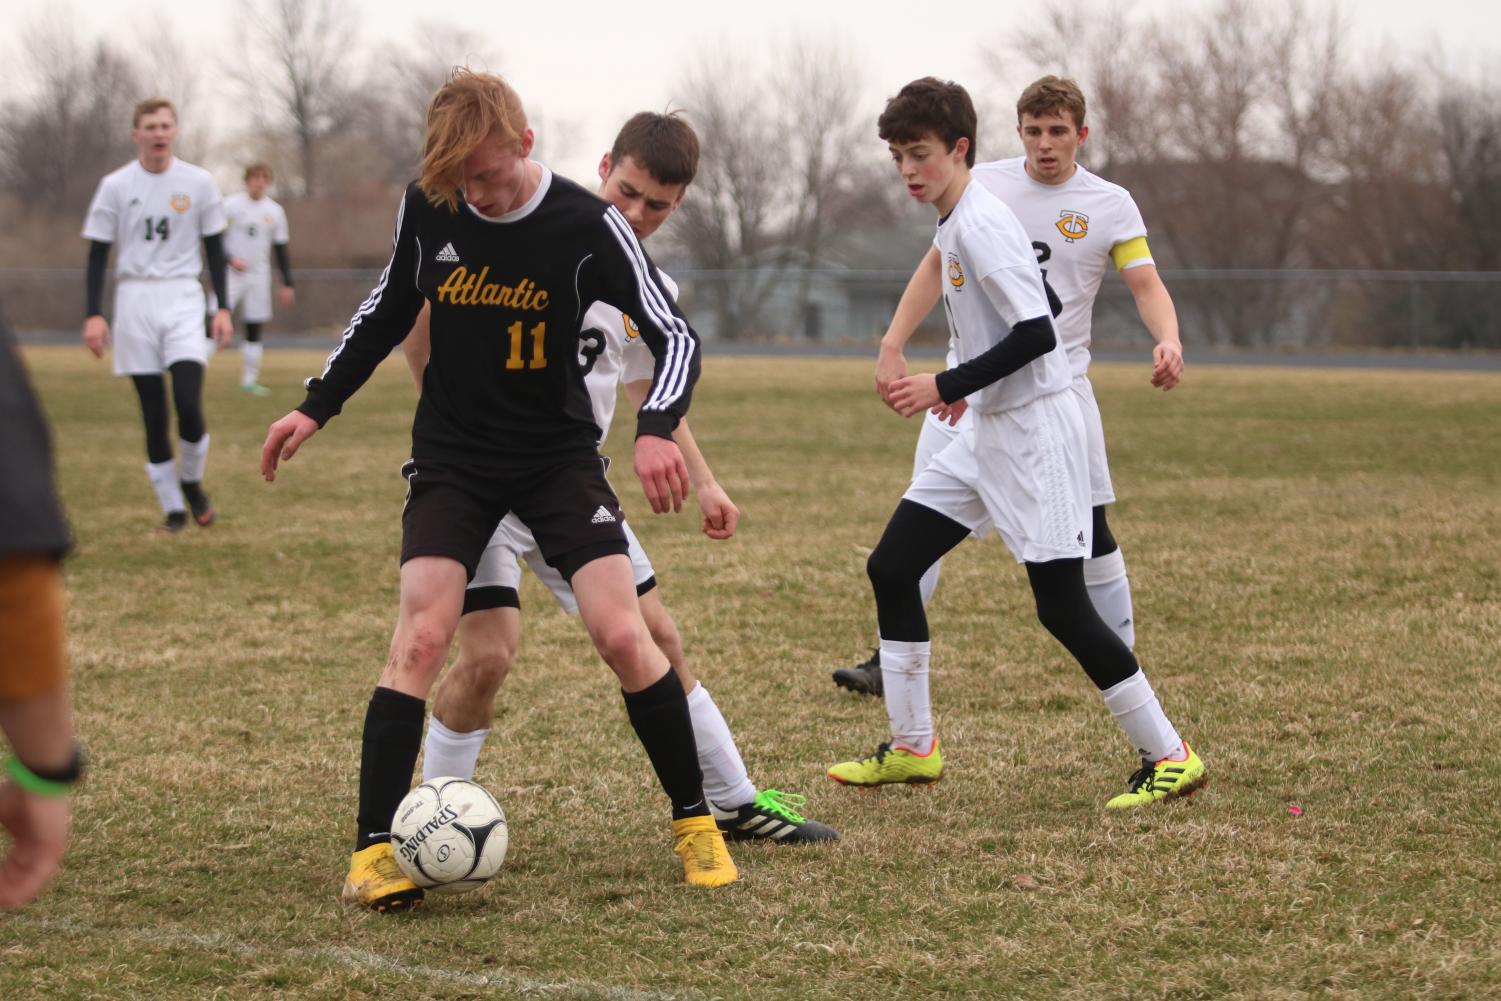 BACK OFF - Junior Ben Andersen shields the ball from a Tri-Center competitor. Andersen has been a key player for the Trojans throughout the season.